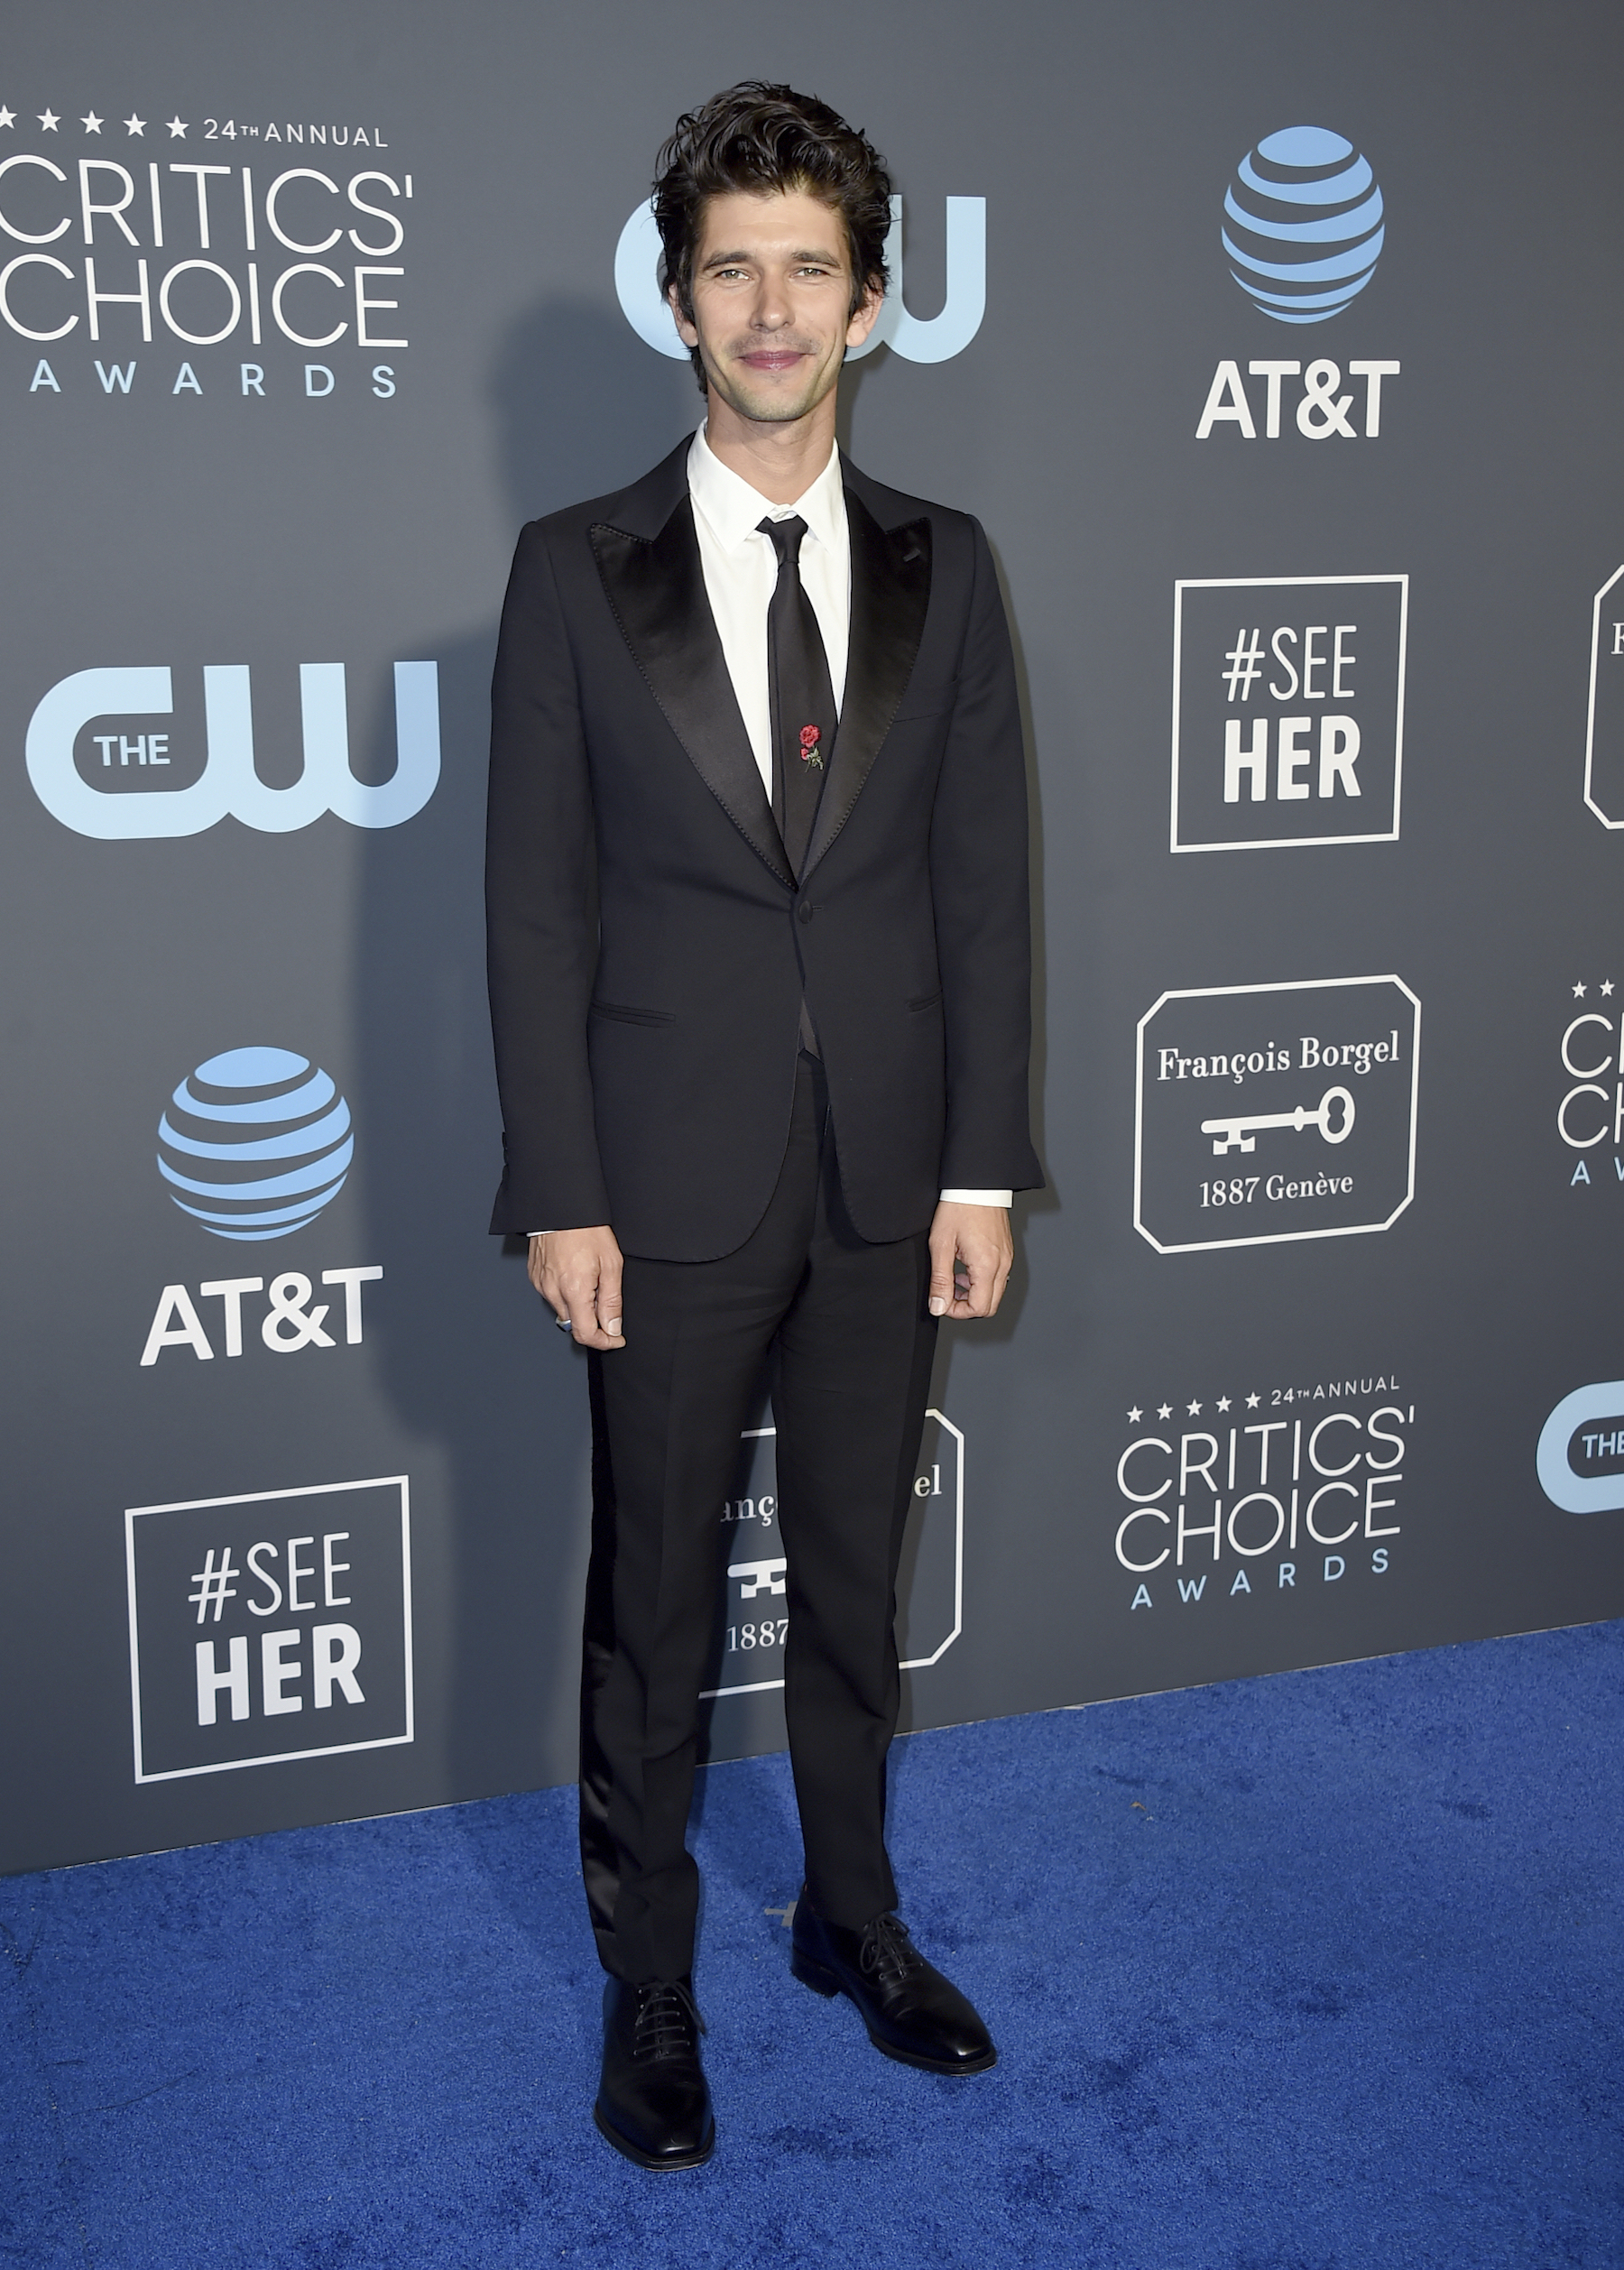 <div class='meta'><div class='origin-logo' data-origin='AP'></div><span class='caption-text' data-credit='Jordan Strauss/Invision/AP'>Ben Whishaw arrives at the 24th annual Critics' Choice Awards on Sunday, Jan. 13, 2019, at the Barker Hangar in Santa Monica, Calif.</span></div>